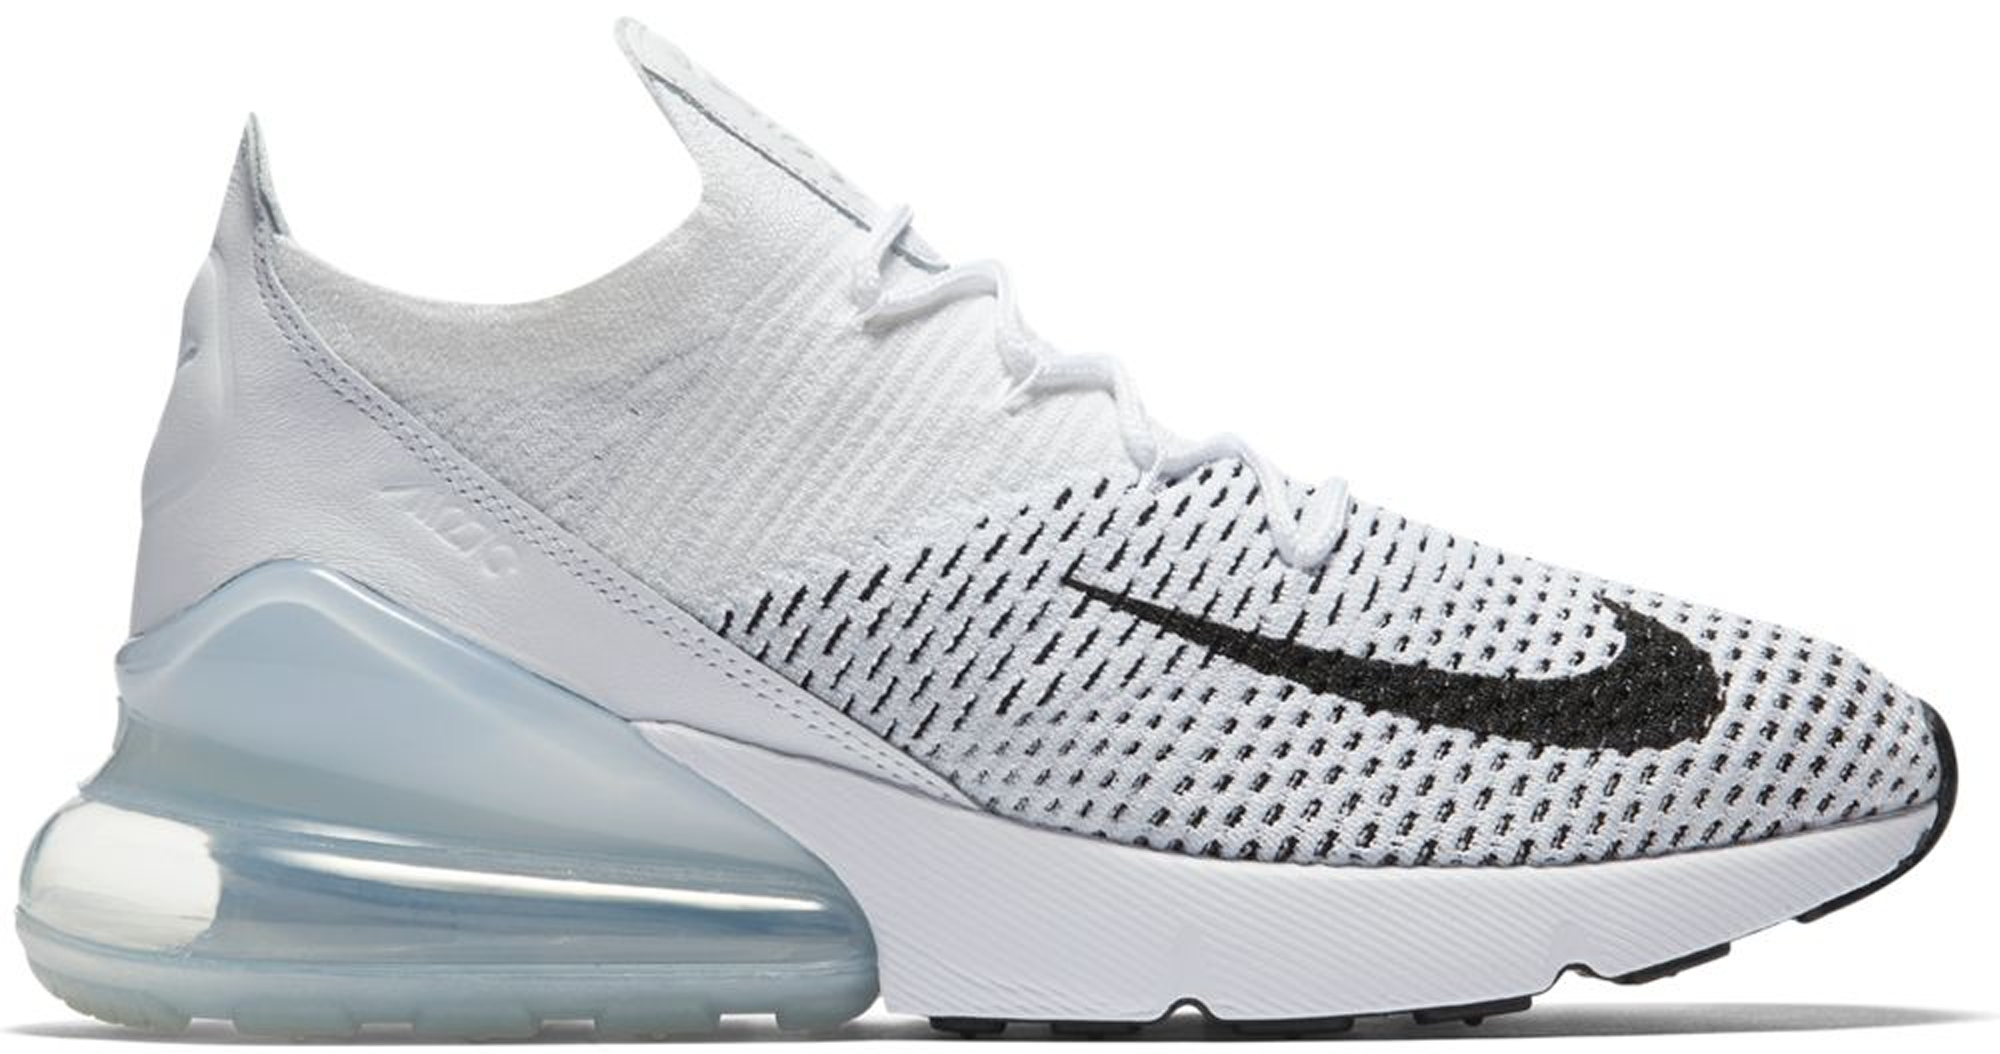 Nike Air Max 270 Flyknit shoes black